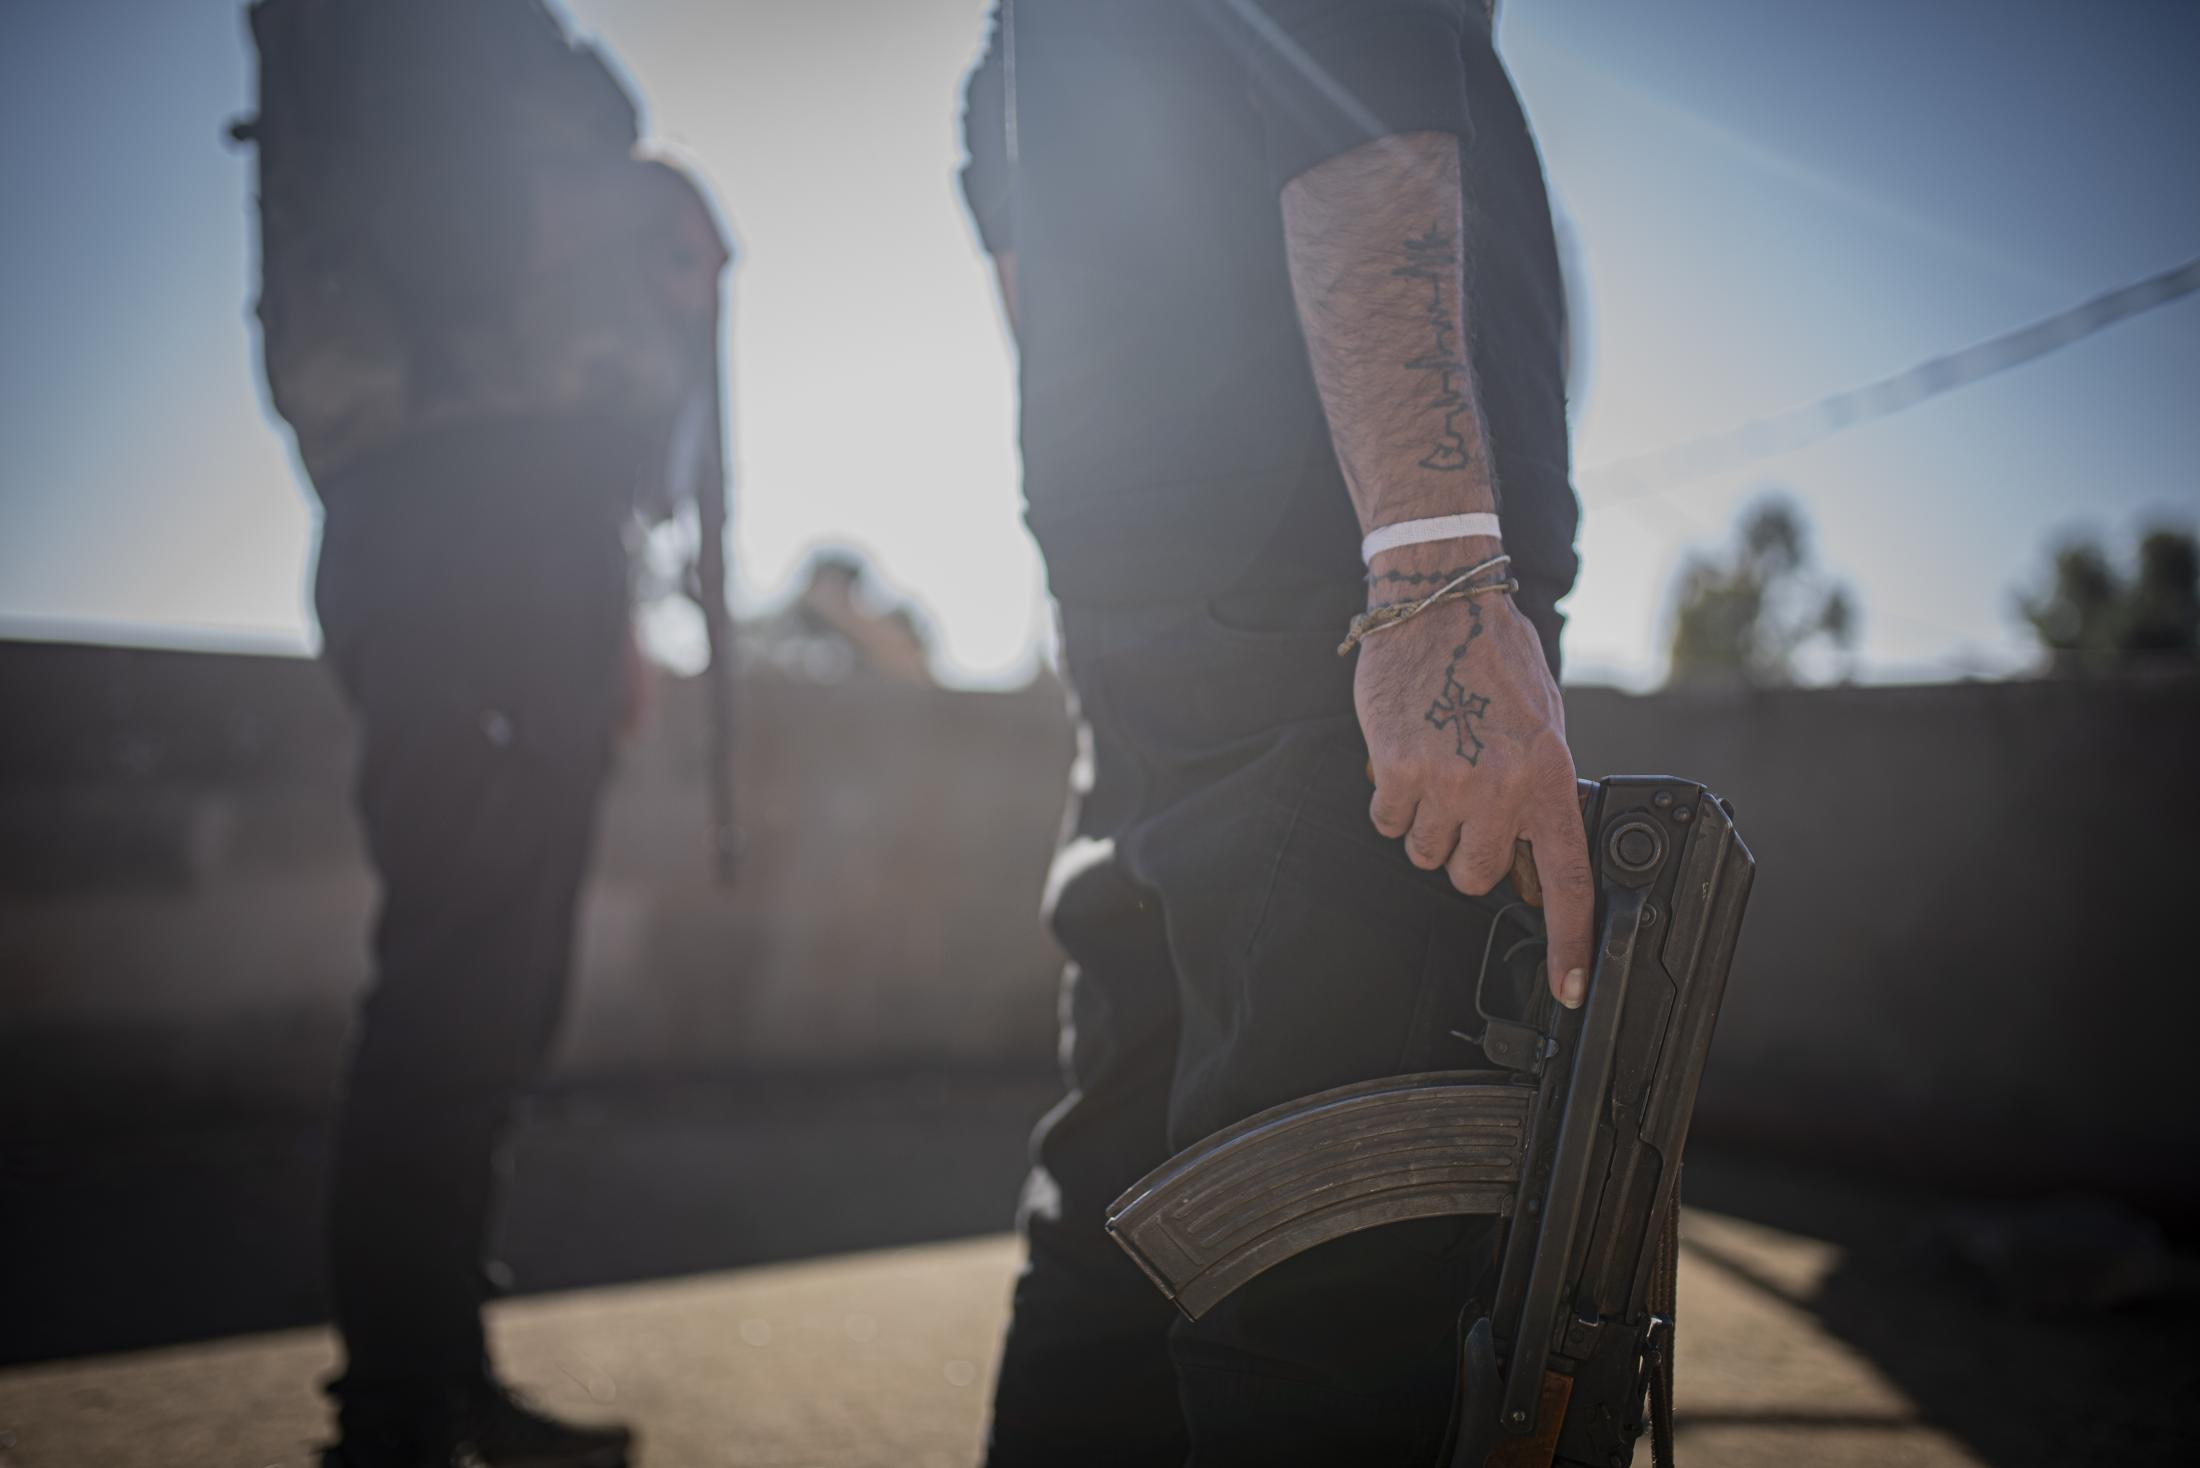 A christian militia soldier hanging a Kalashnikov and showin the christian cross tatoo in his hand in the frontline of Tel Nasri. After the withdrawal of US troops from northern Syria in October 2019, Turkey launched an offensive against the predominantly Kurdish areas in the northeast of the country along Islamist forces. Calls for war crimes investigations into the conduct of Ankara-backed militias are mounting ever since. (Andoni Lubaki / Euskal Fondoa)